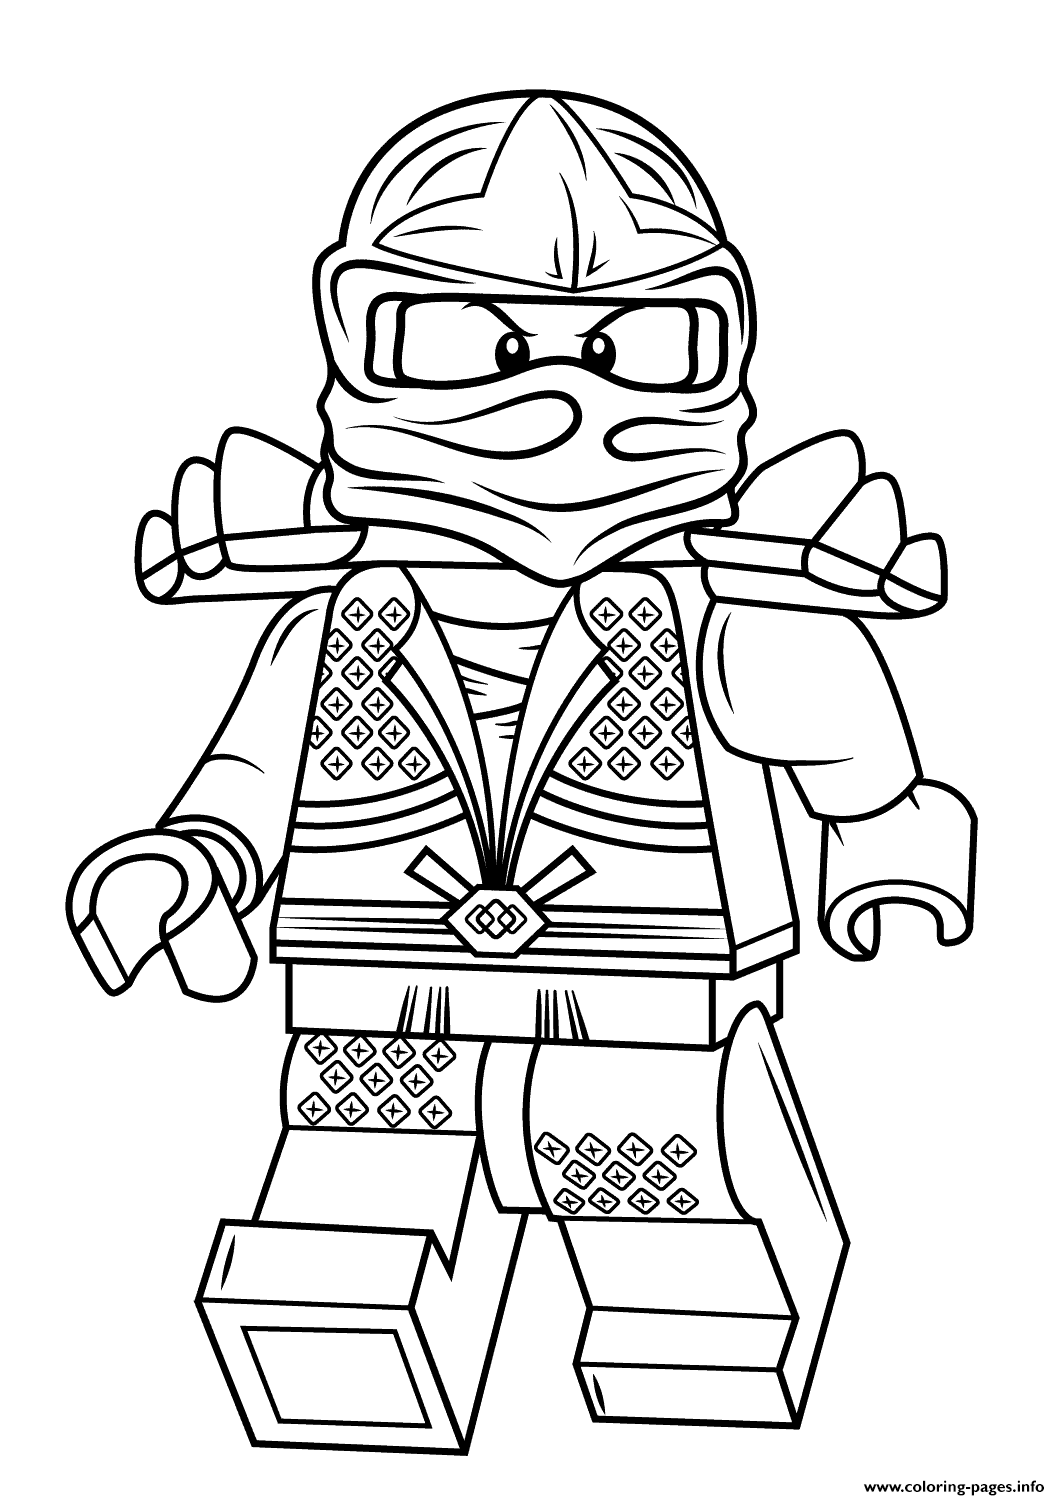 print lego ninjago lloyd zx coloring pages | lego coloring